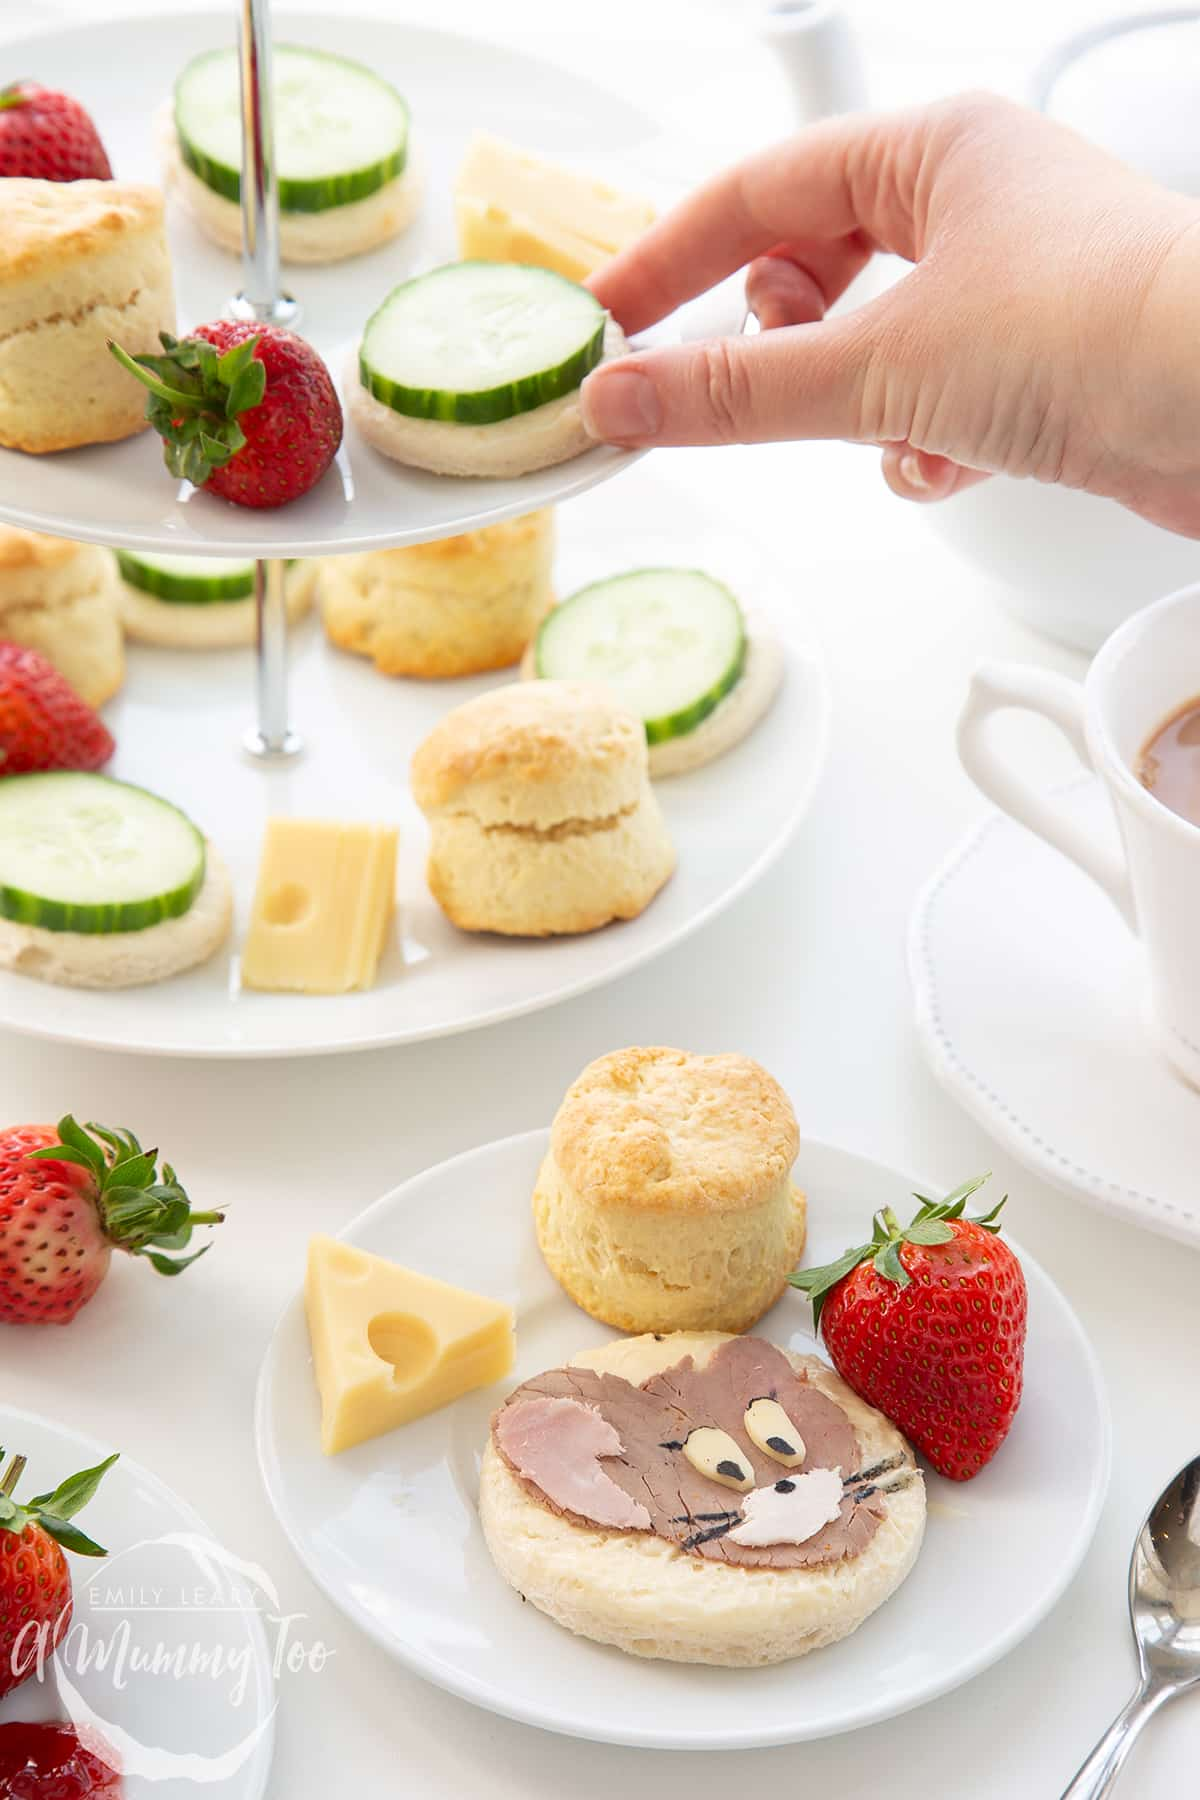 Tom and Jerry afternoon tea on a cake stand with a combination of scones, sandwhiches, cheese and strawberries.